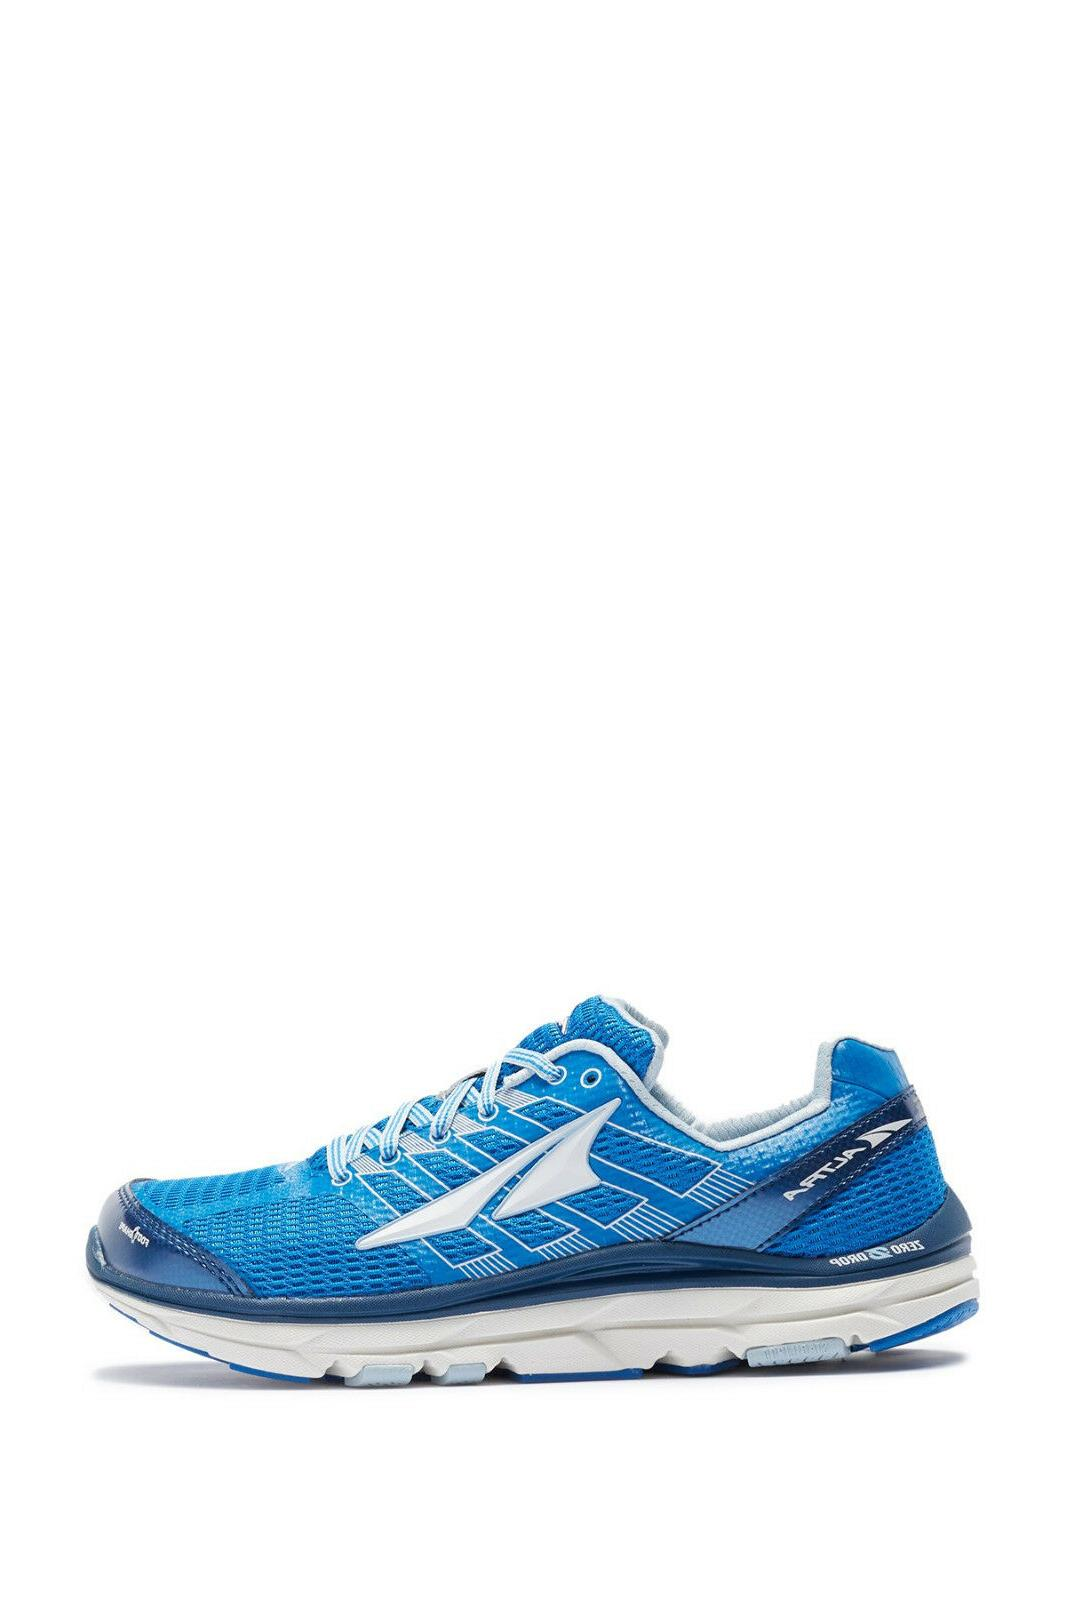 Altra Provision 3.0 Running Shoes, Men's Sizes